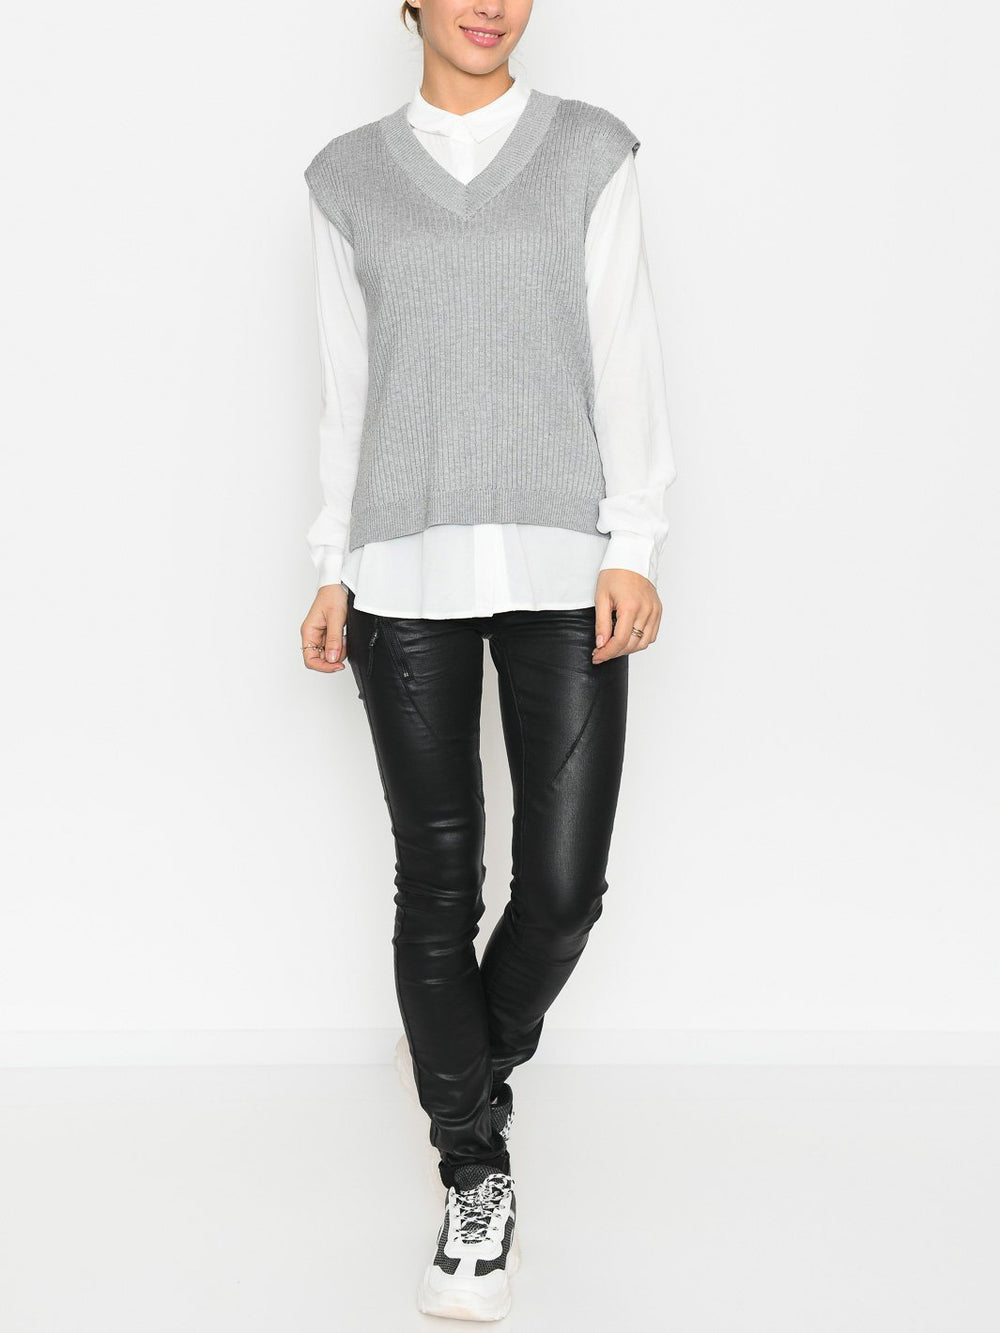 Soft Rebels Jasmin v-neck vest knit light grey - Online-Mode